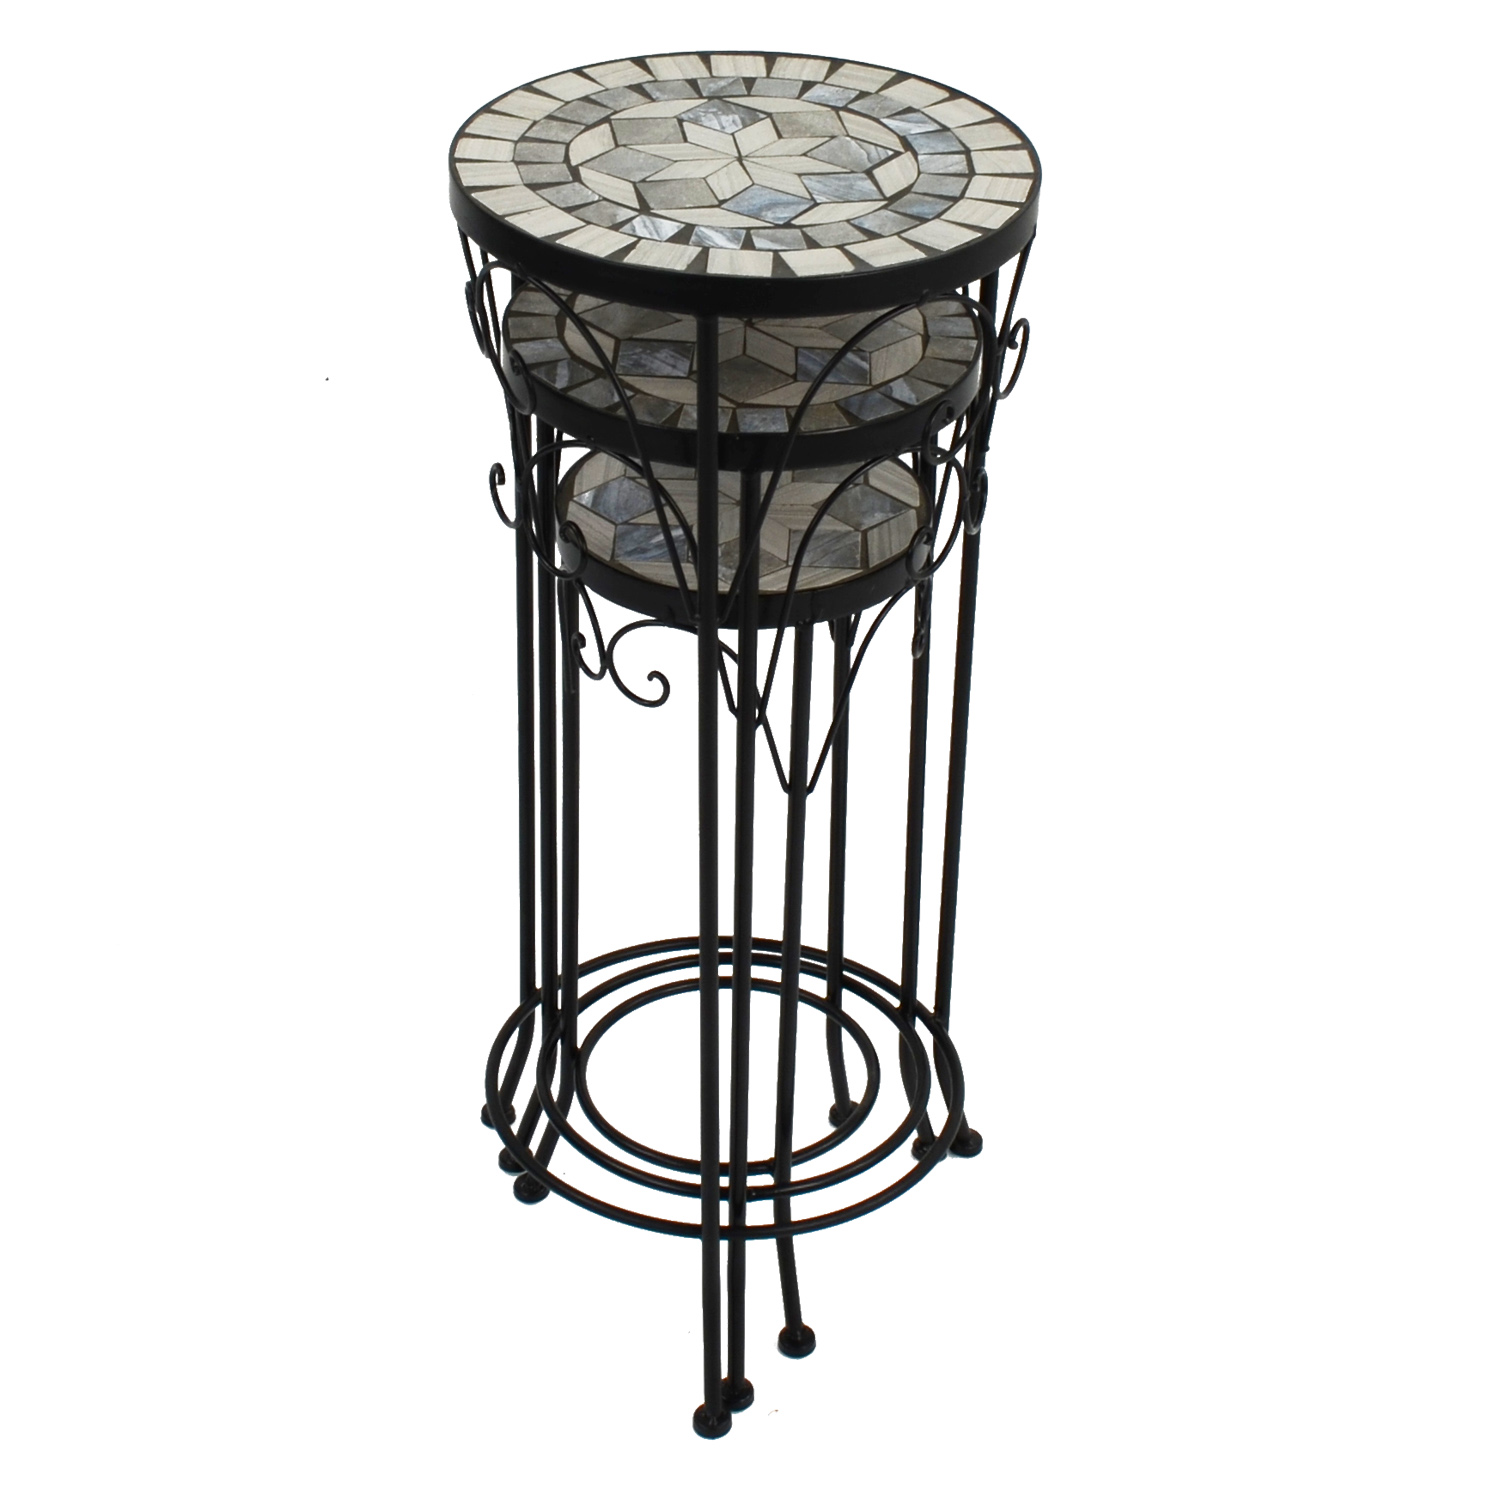 VERDE PLANTSTAND SET OF 3 TALL STACKED